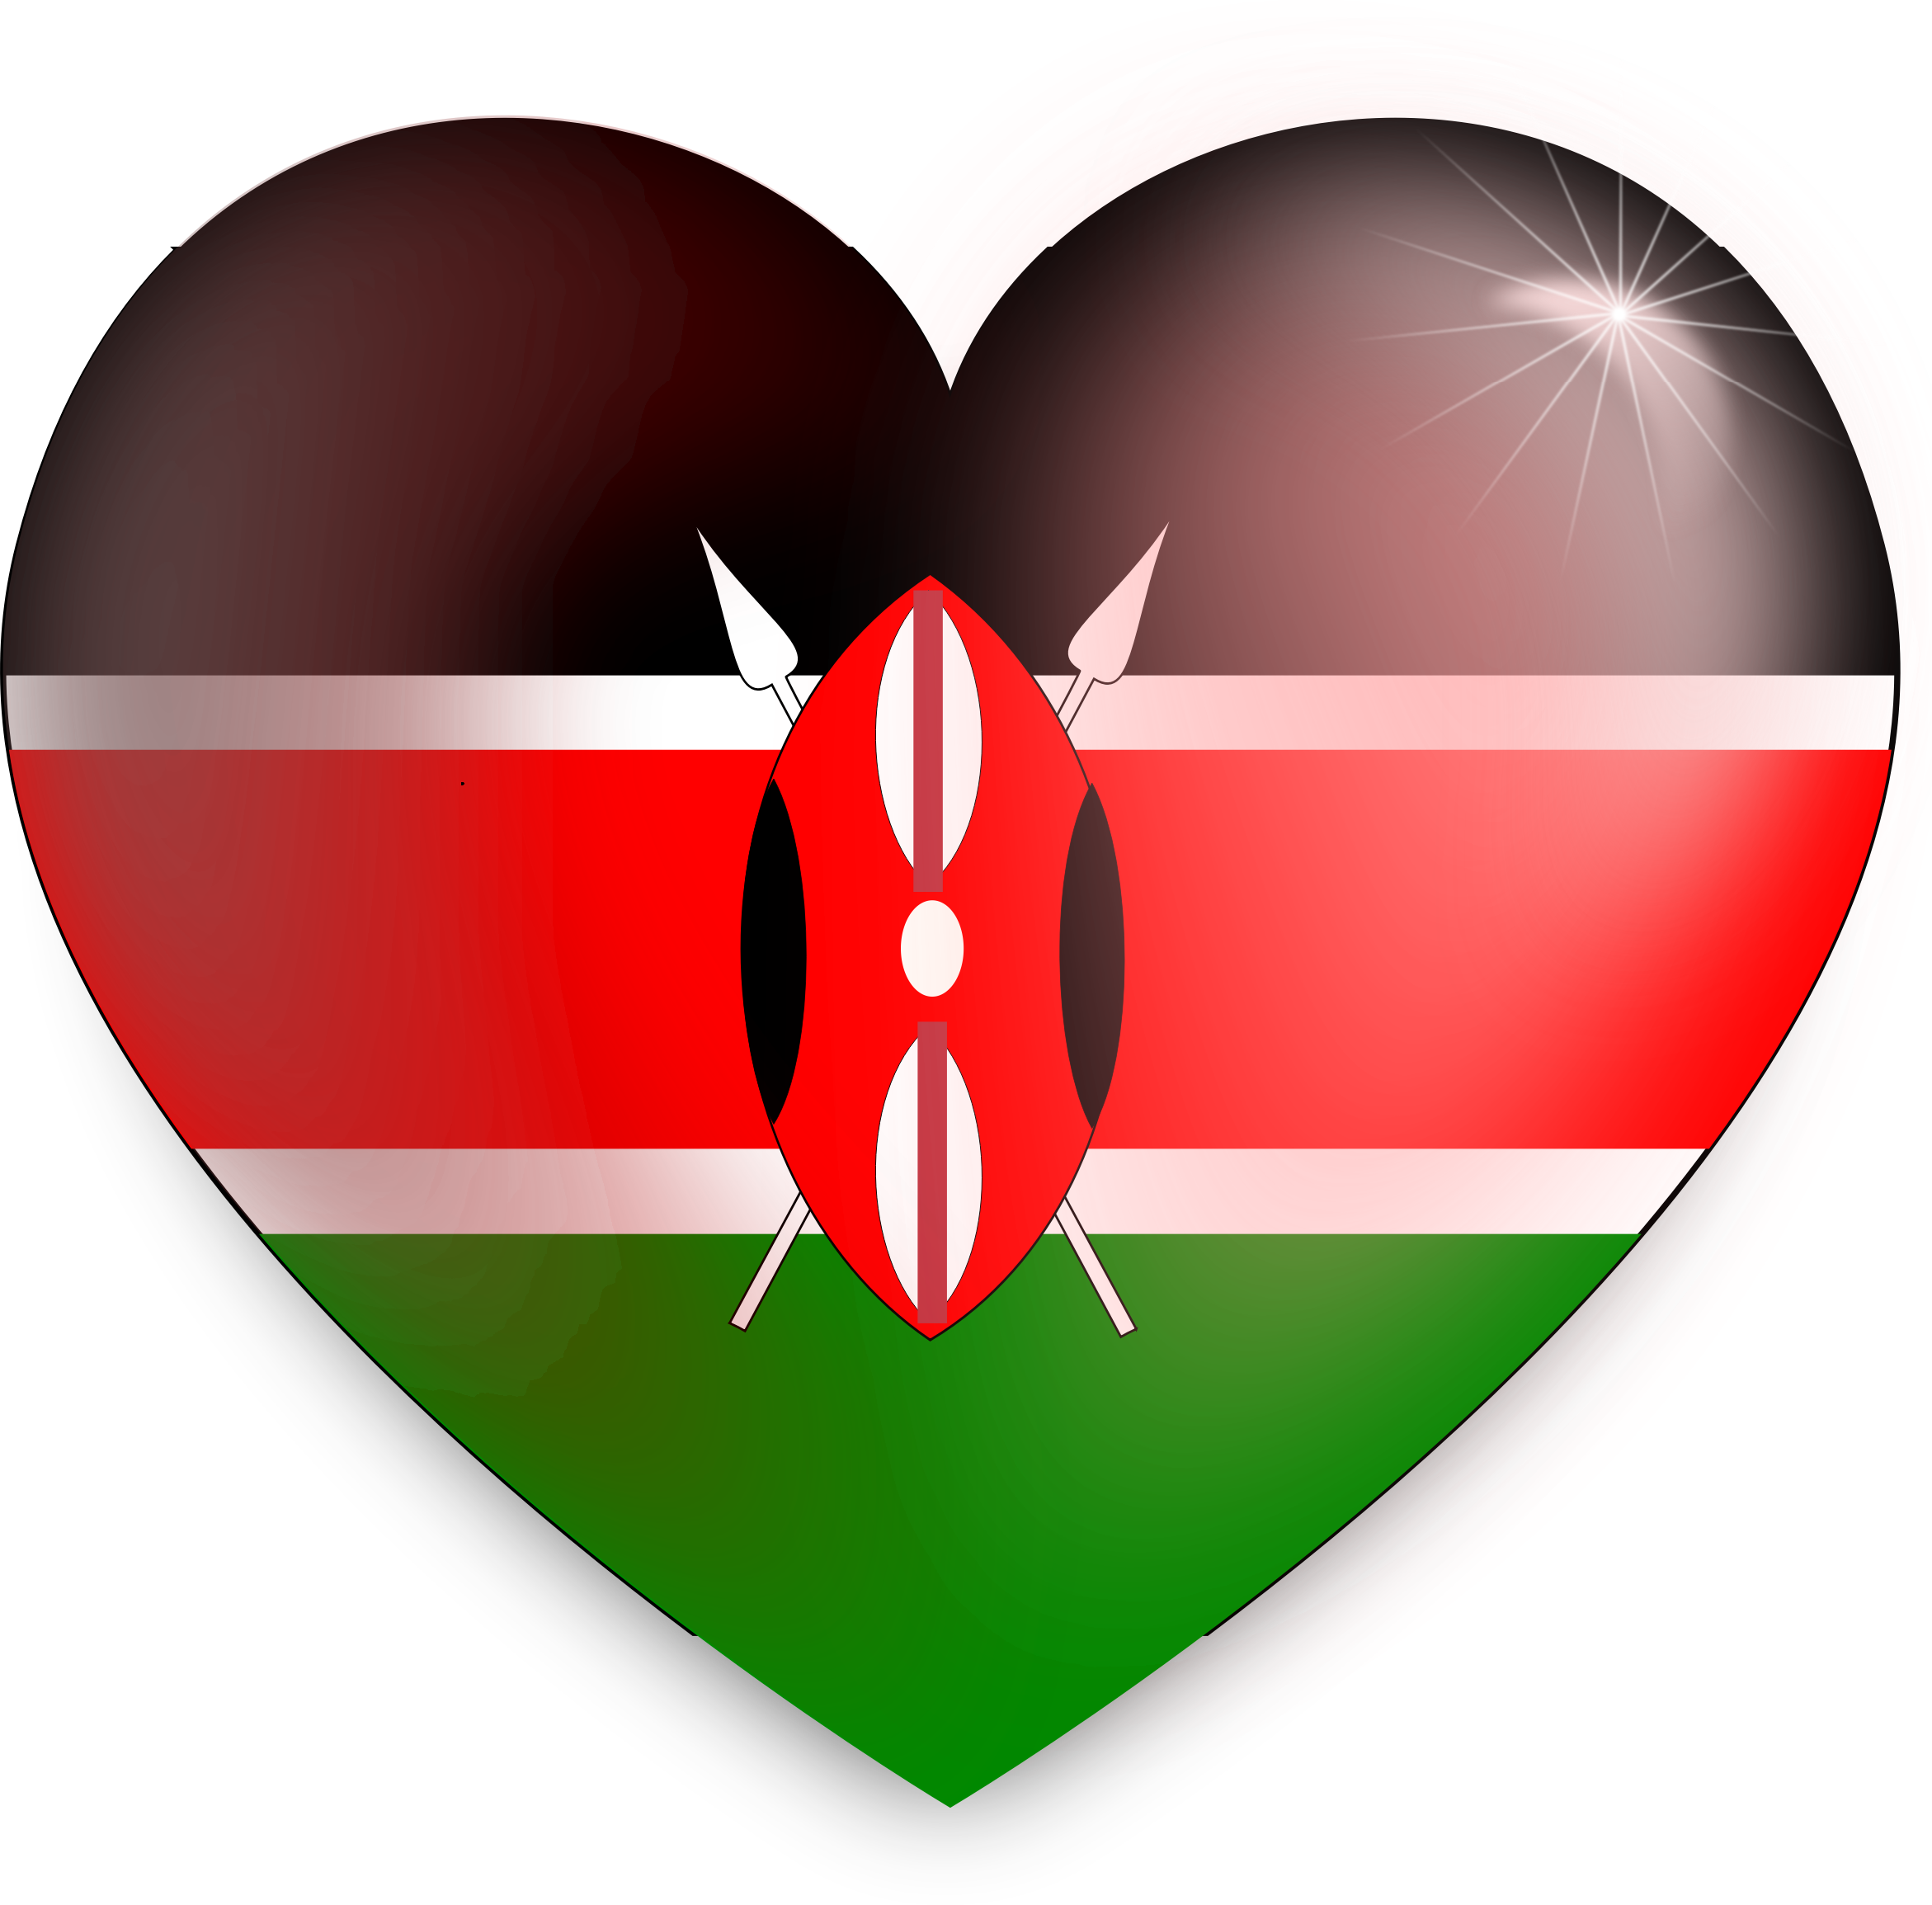 Heart Kenya by j_iglar